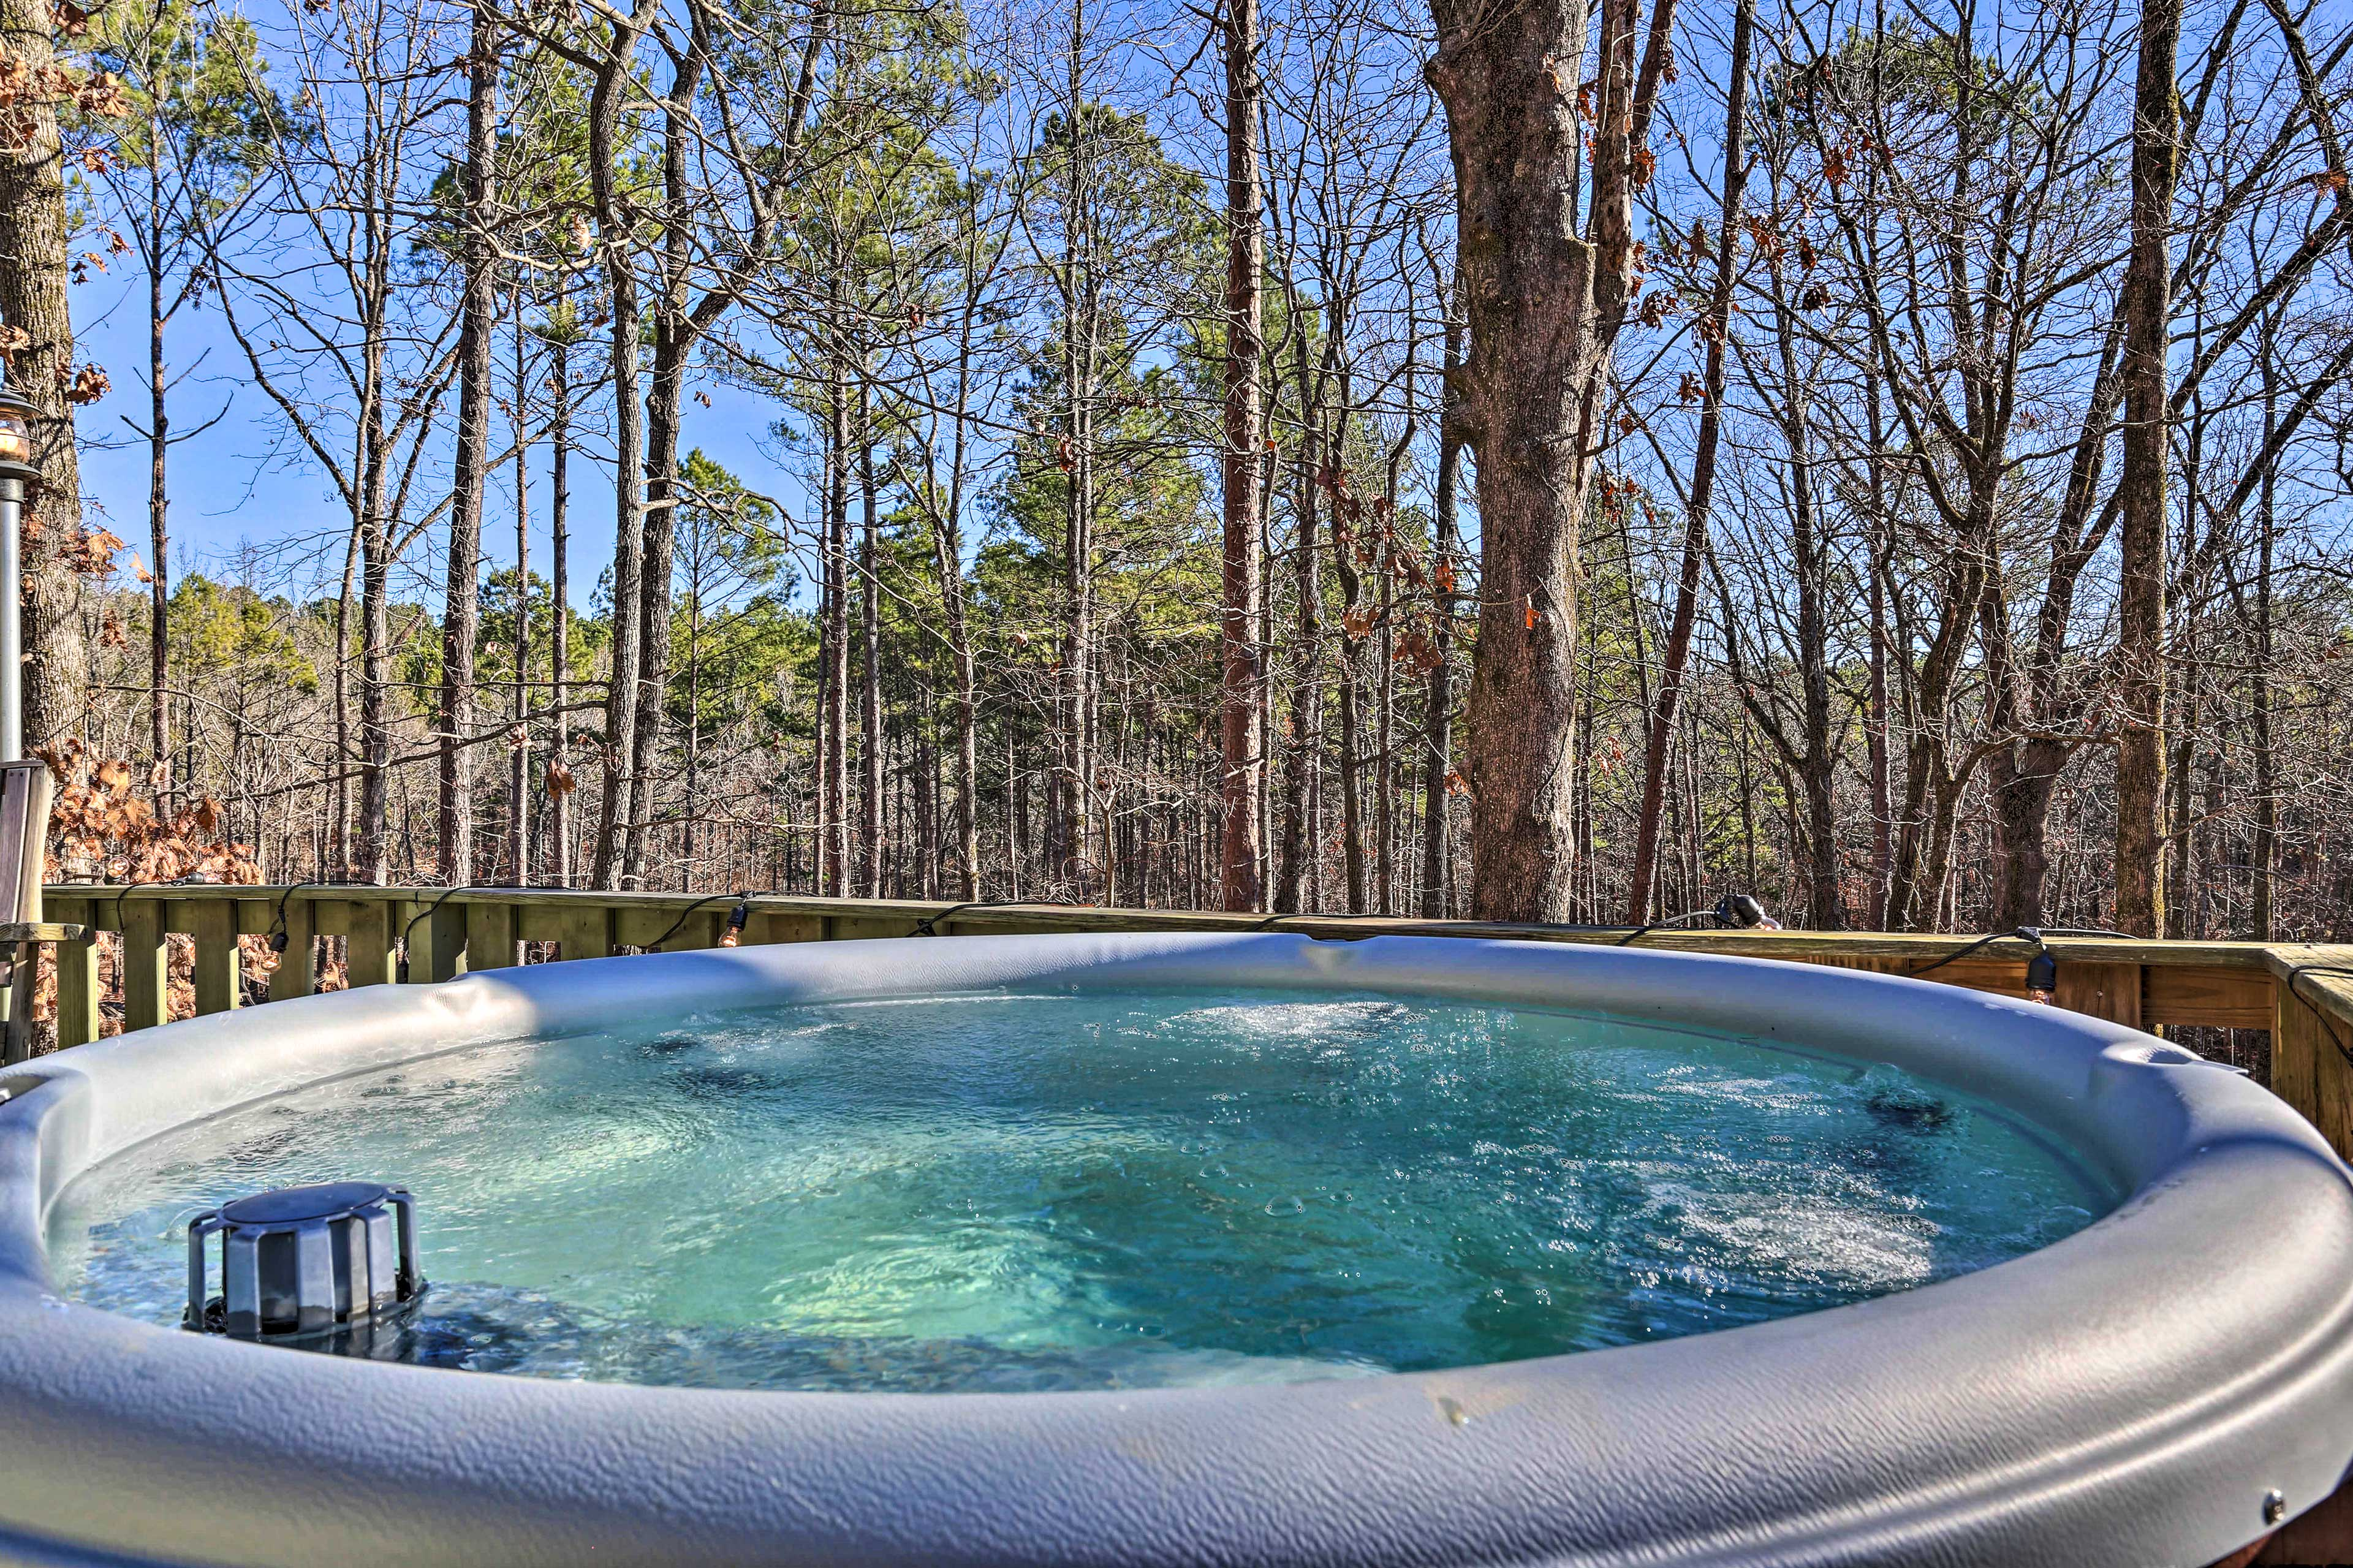 Start your days with a soothing soak in the hot tub!